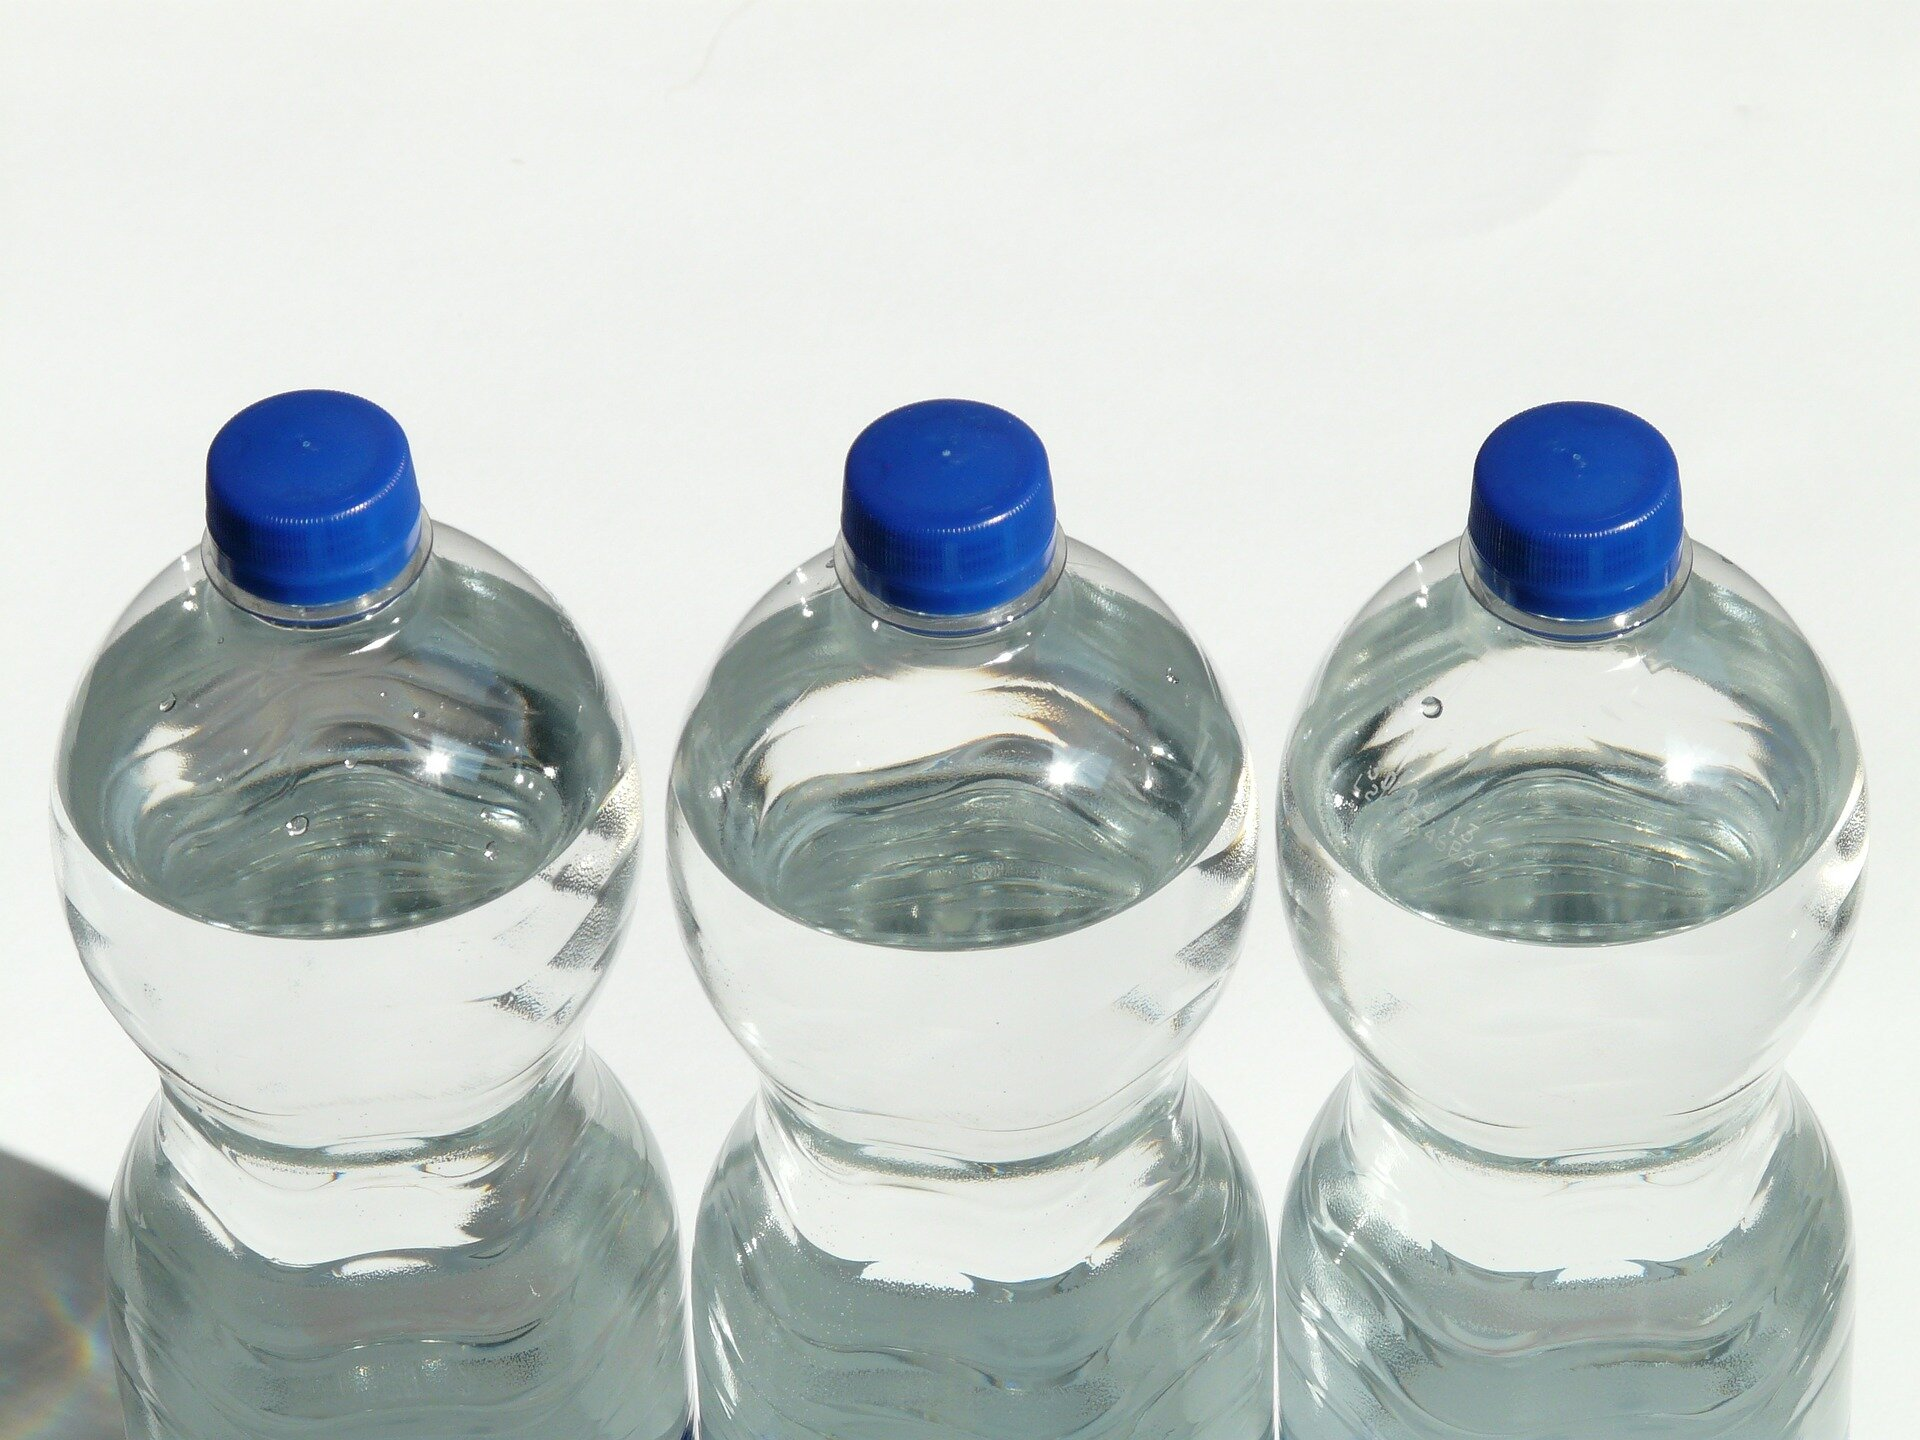 Researchers develop an efficient, low-energy method for upcycling polyethylene plastic waste into valuable molecules